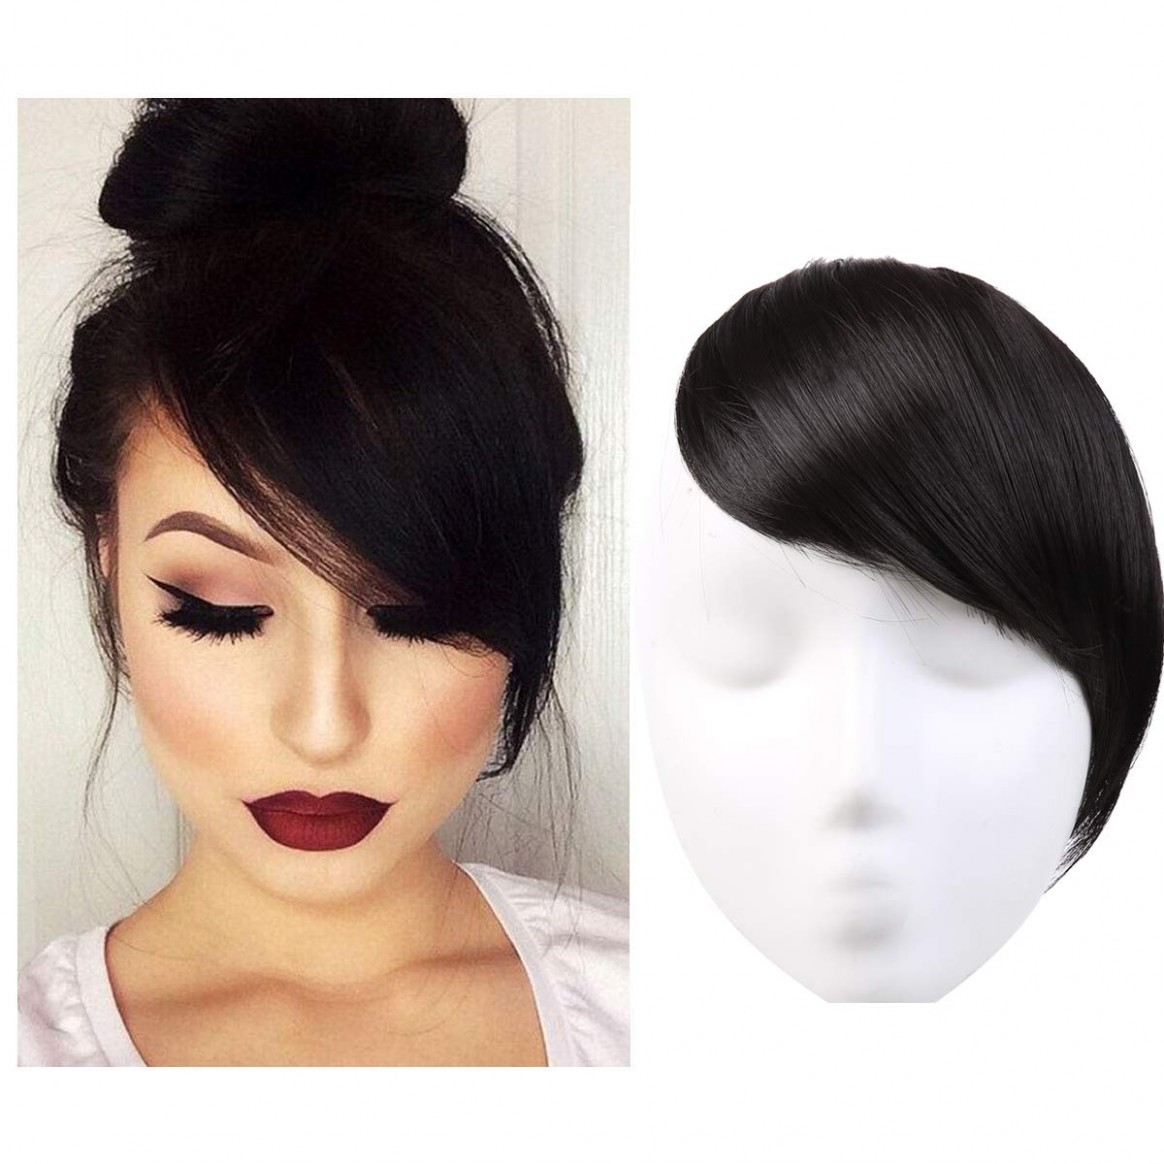 Bangs Hair Clip In/on Off Black Synthetic Side Bangs Natural Straight Hair Pieces Extensions One Piece For Women SARLA B10&10 Side Bang Styles